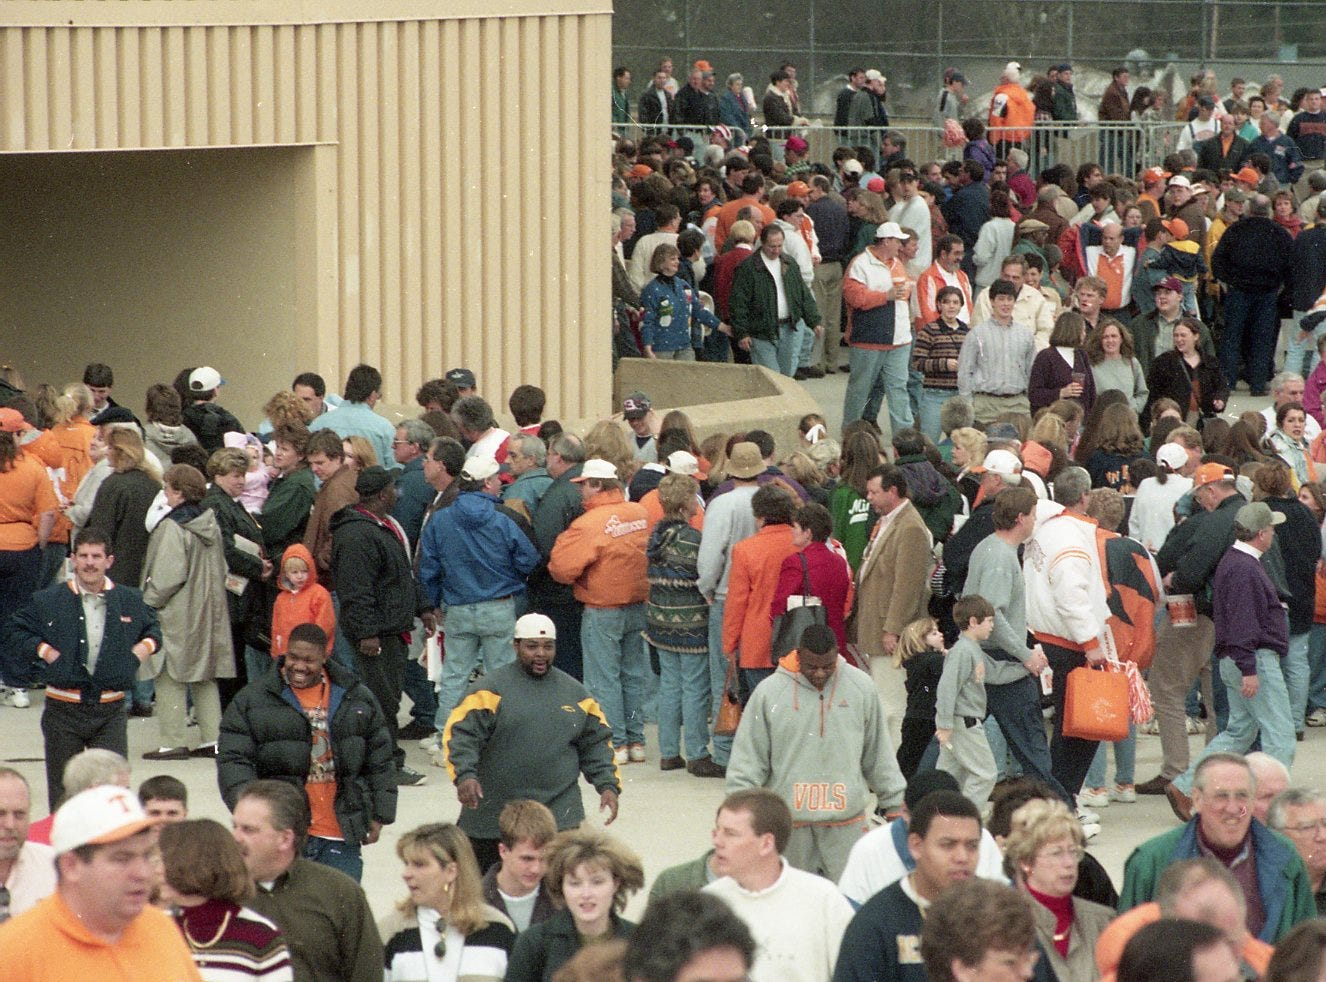 Tennessee basketball fans outside of Thompson-Boling Arena in February 1998.